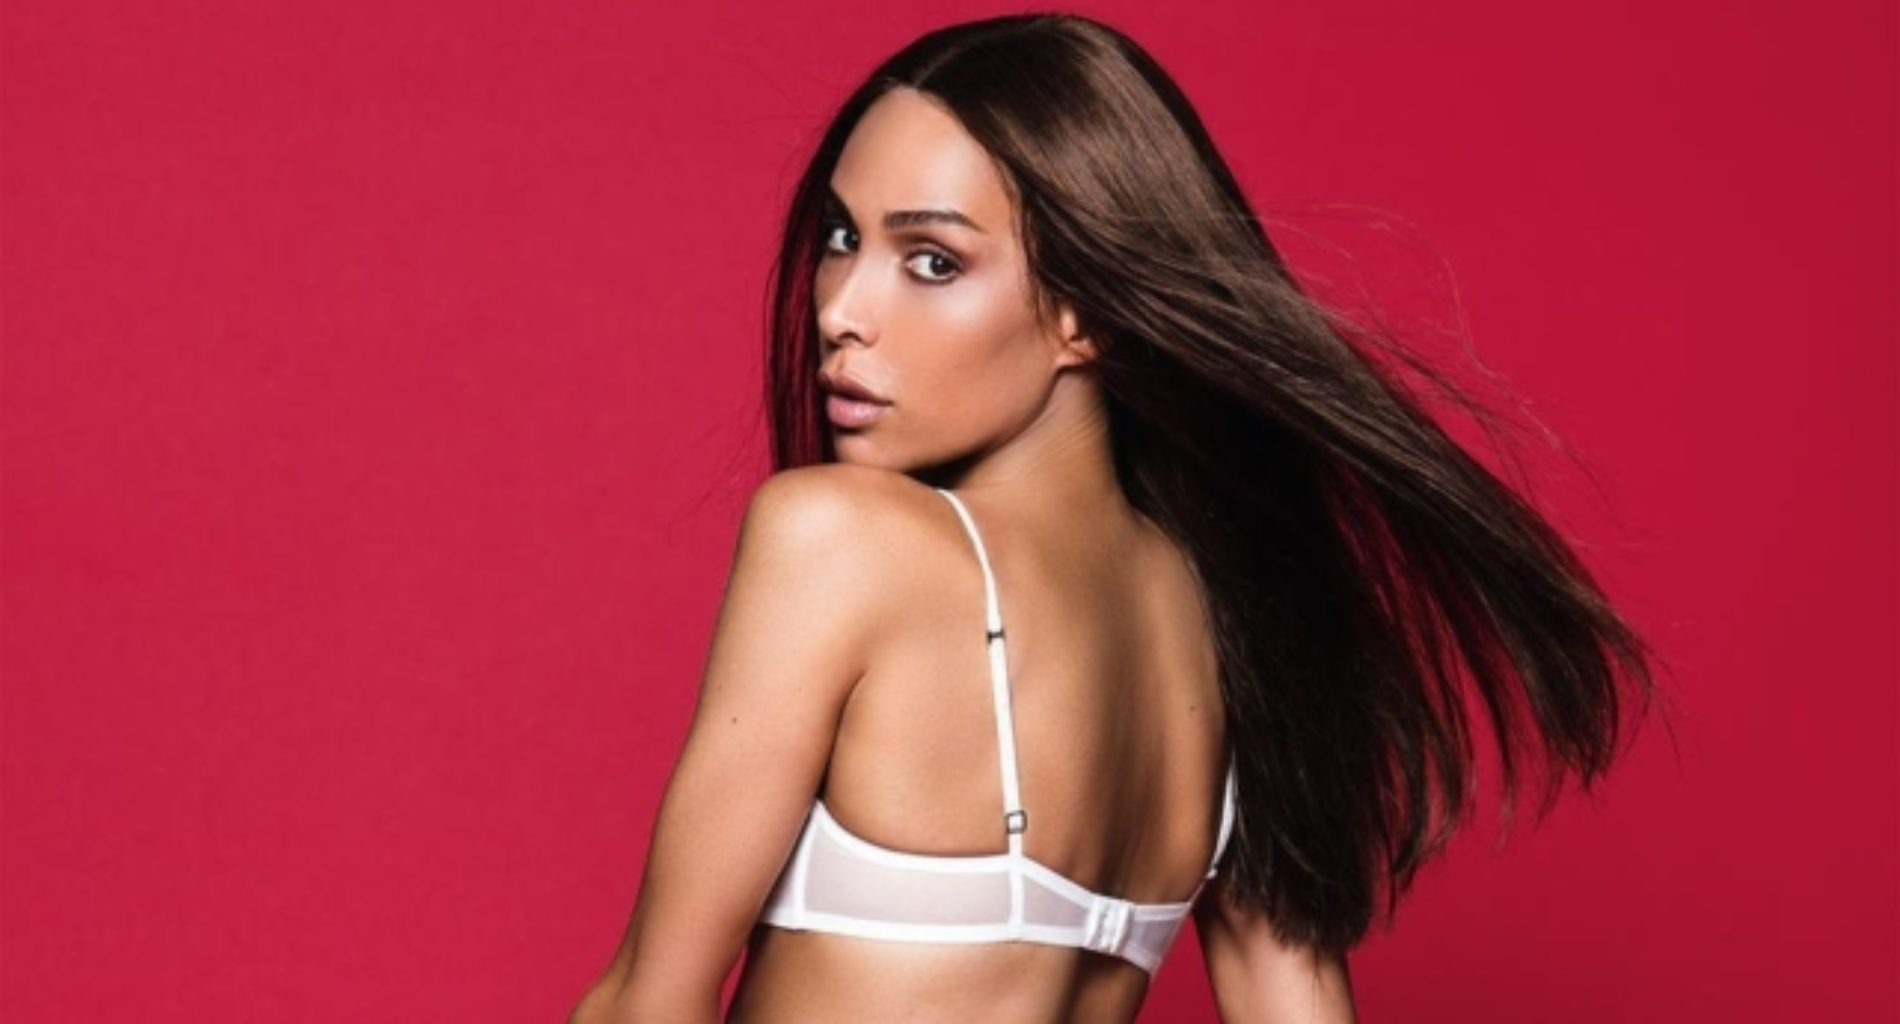 Playboy debuts its first transgender Playmate, French model Ines Rau